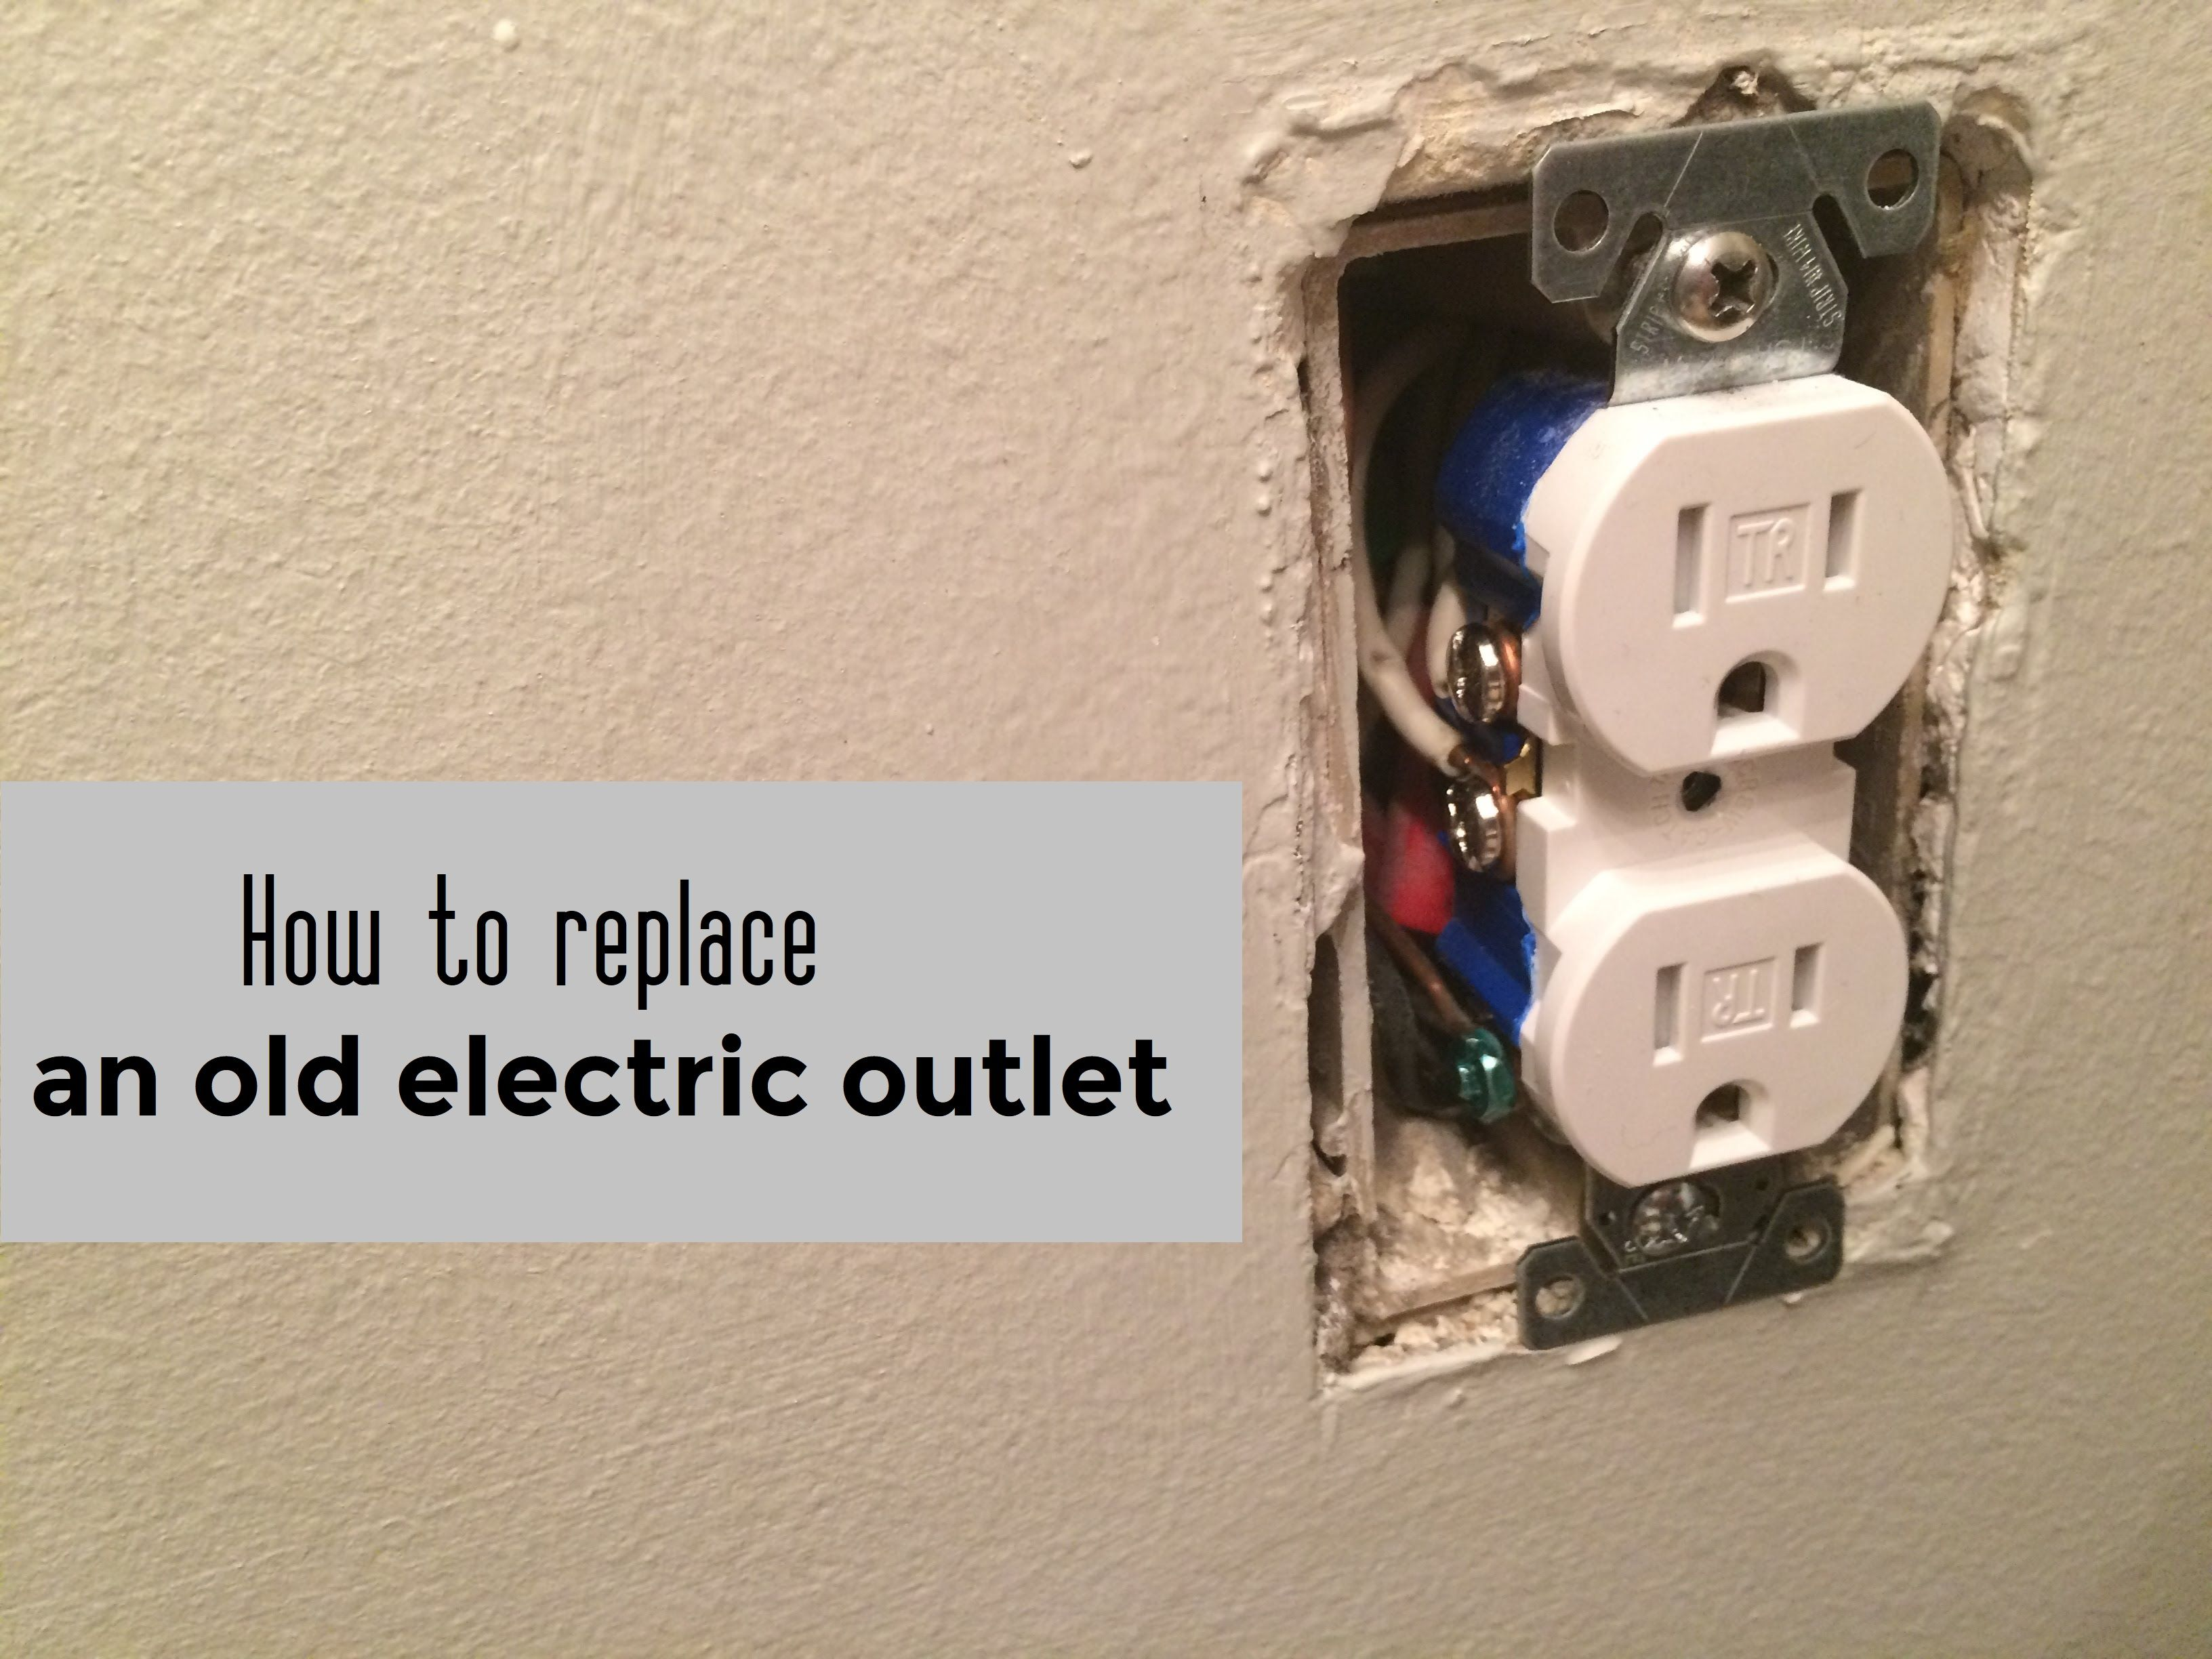 hight resolution of how to replace an old electric outlet diy doityourself outlet electrical electric